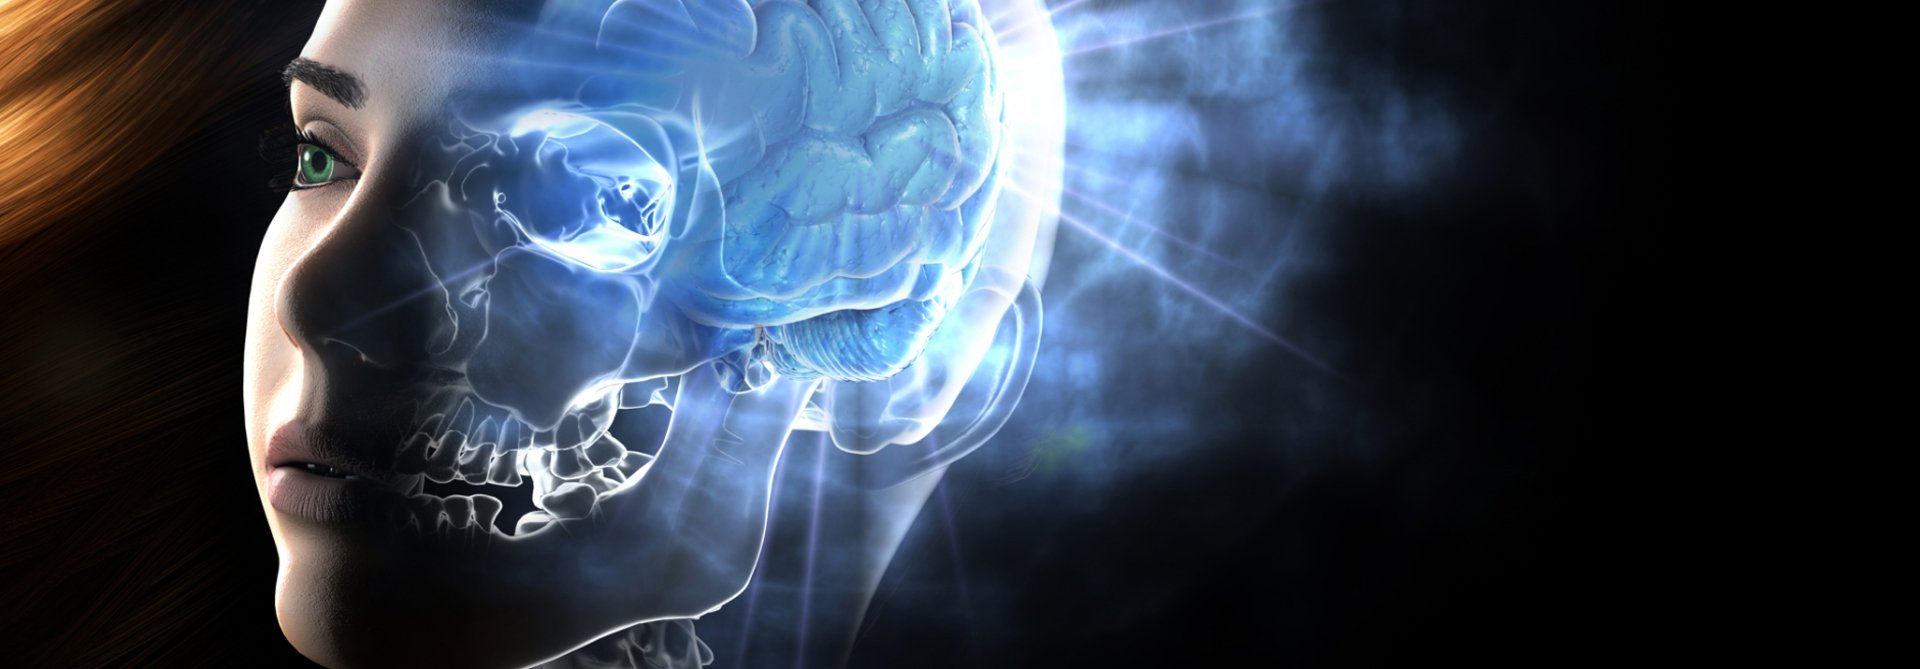 electronic head indicating clinical hypnotherapy